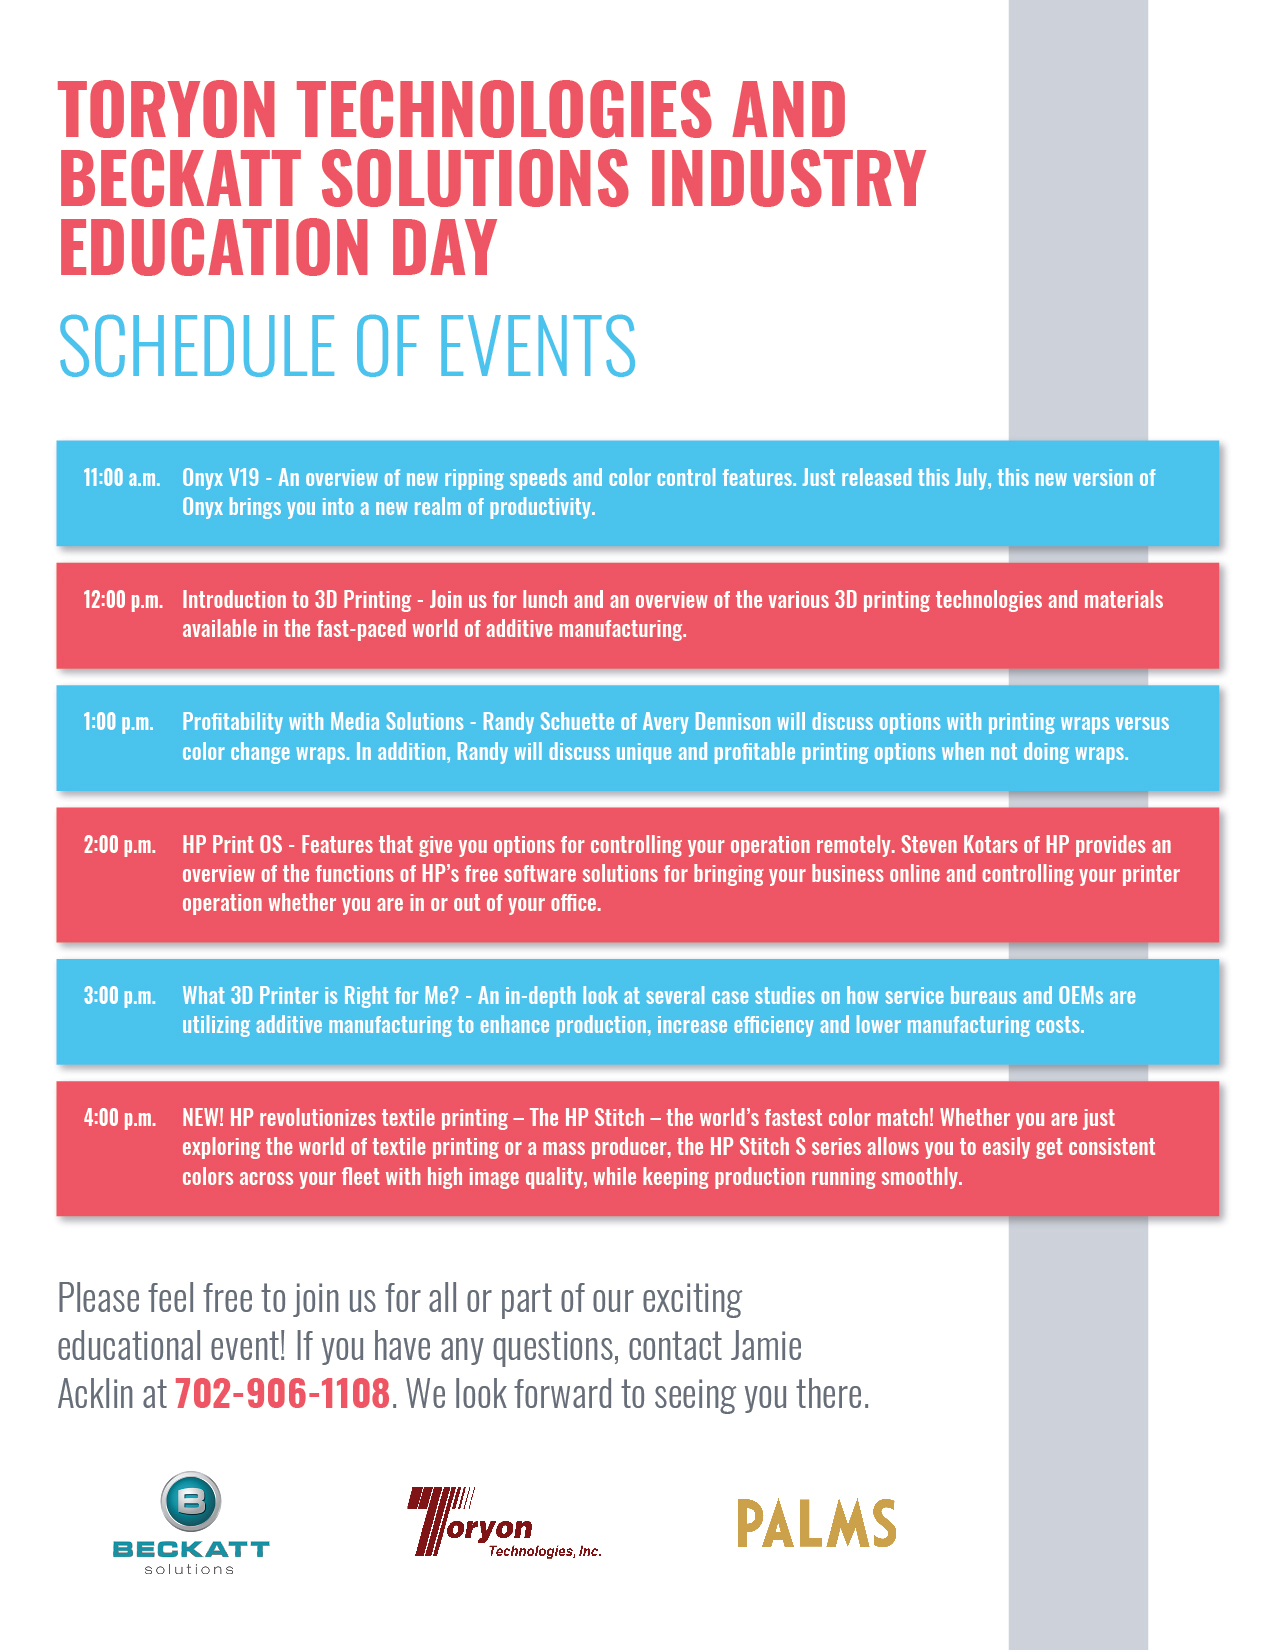 INDUSTRY EDUCATION DAY SCHEDULE